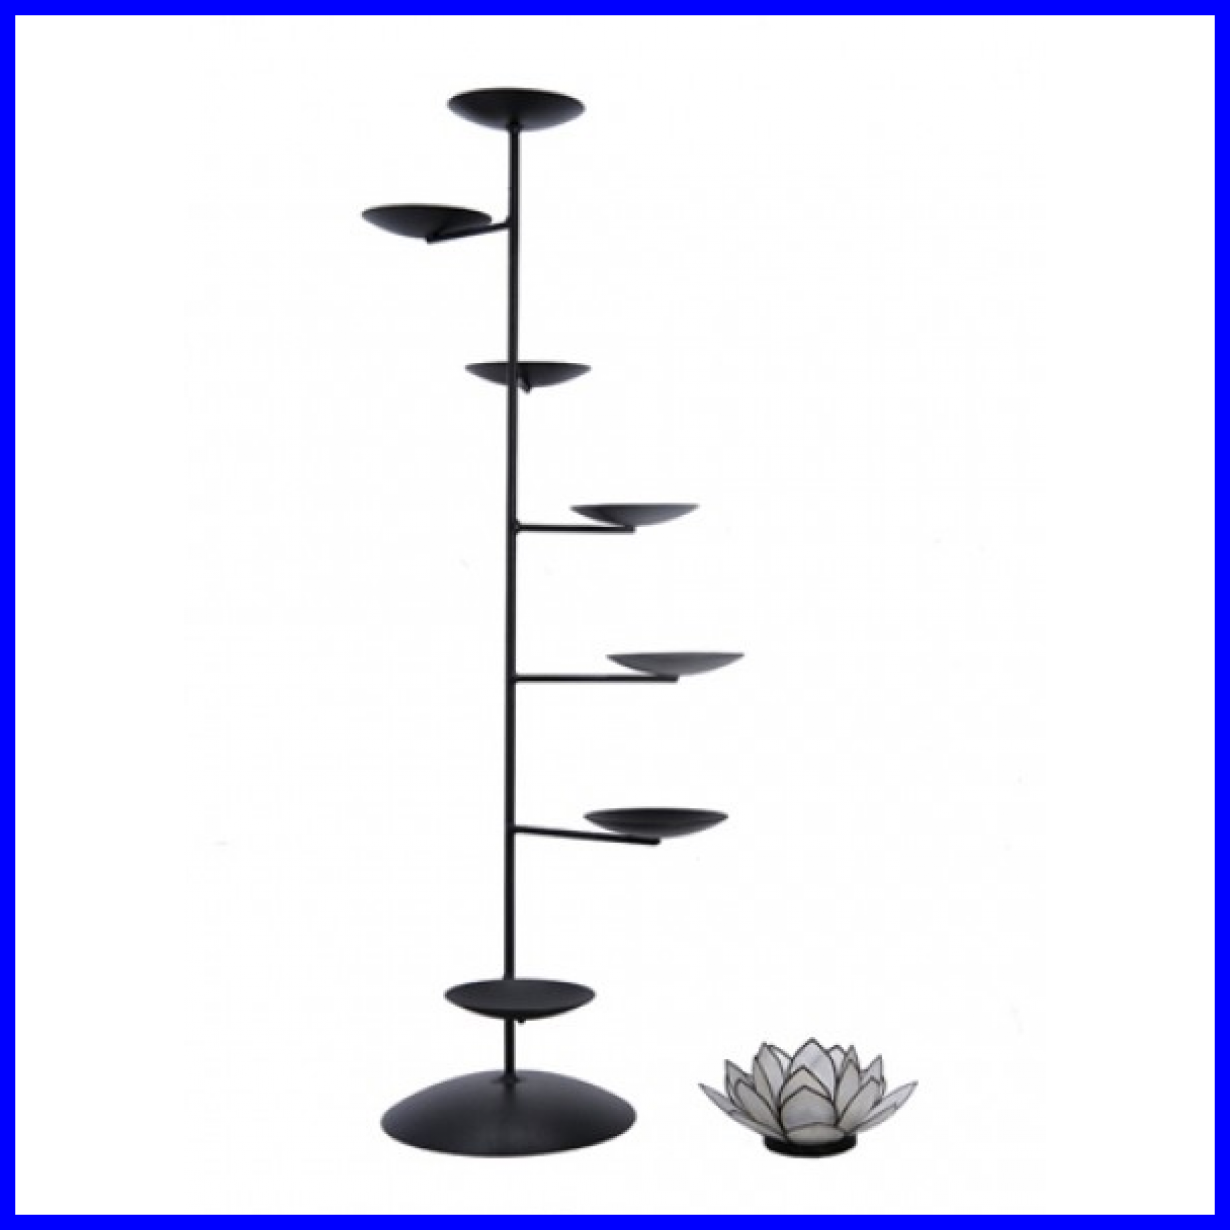 Lamp clipart lampstand. Awesome lotus tea light